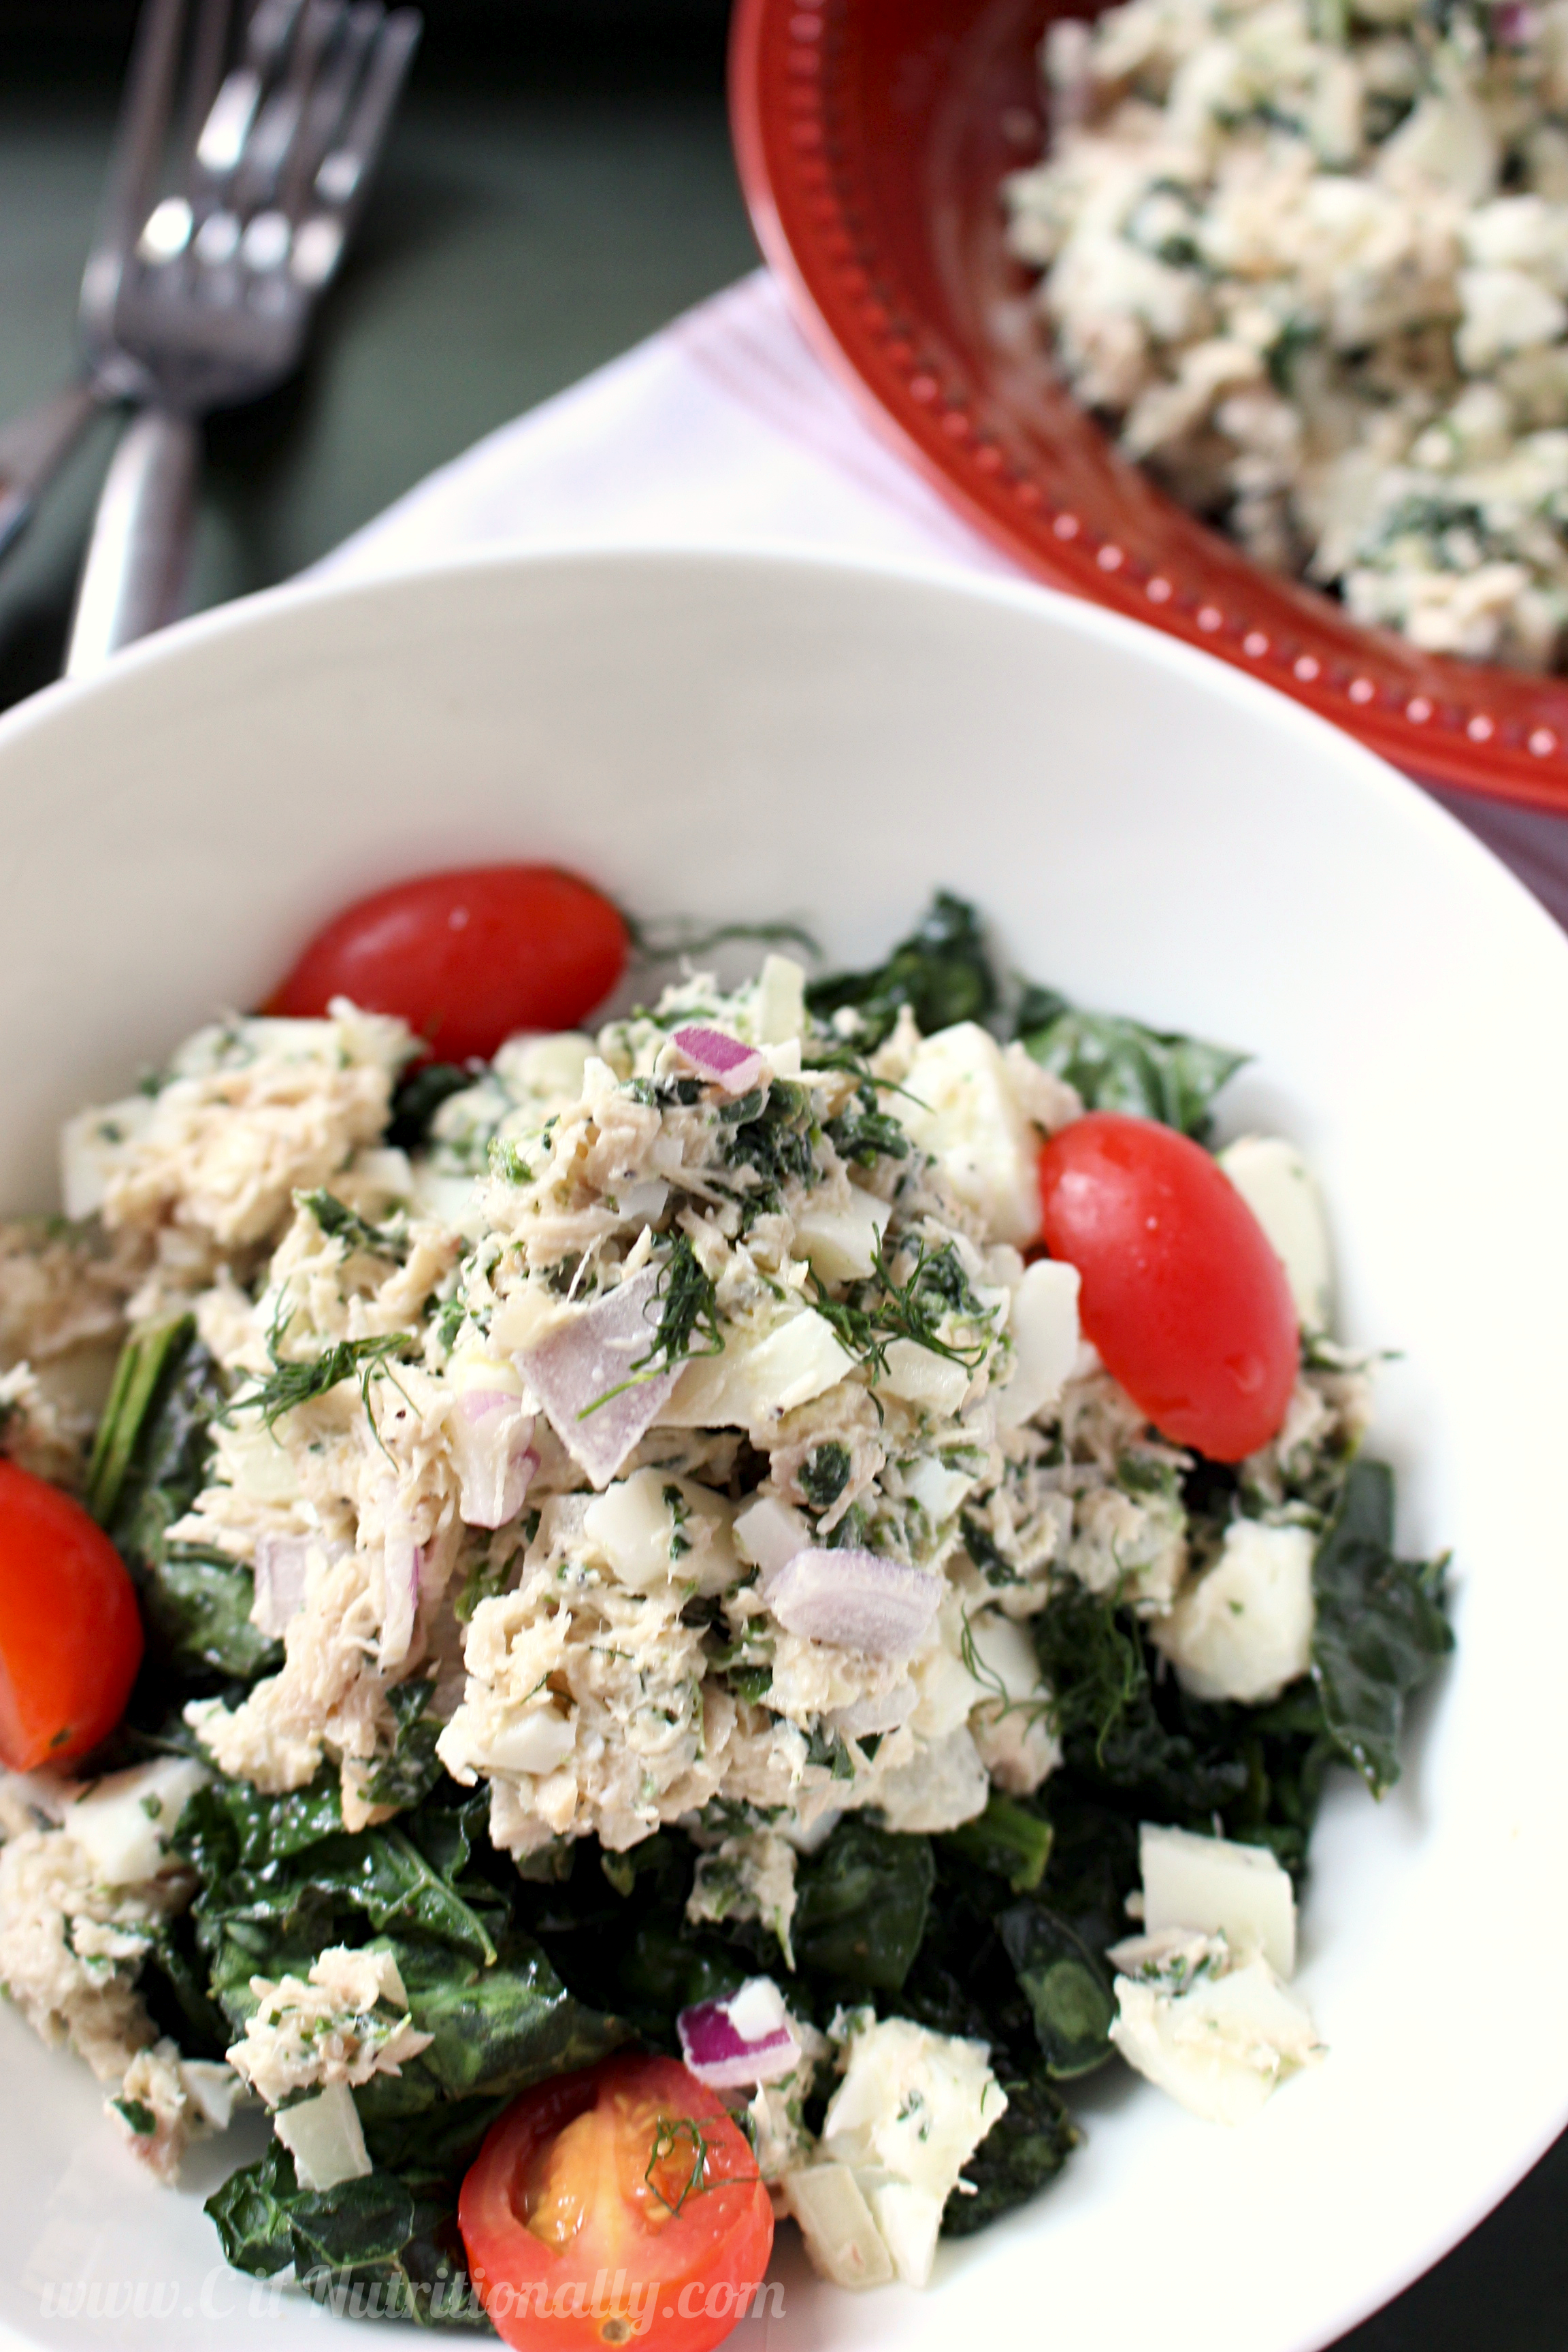 Spinach, Egg White & Tuna Salad | C it Nutritionally